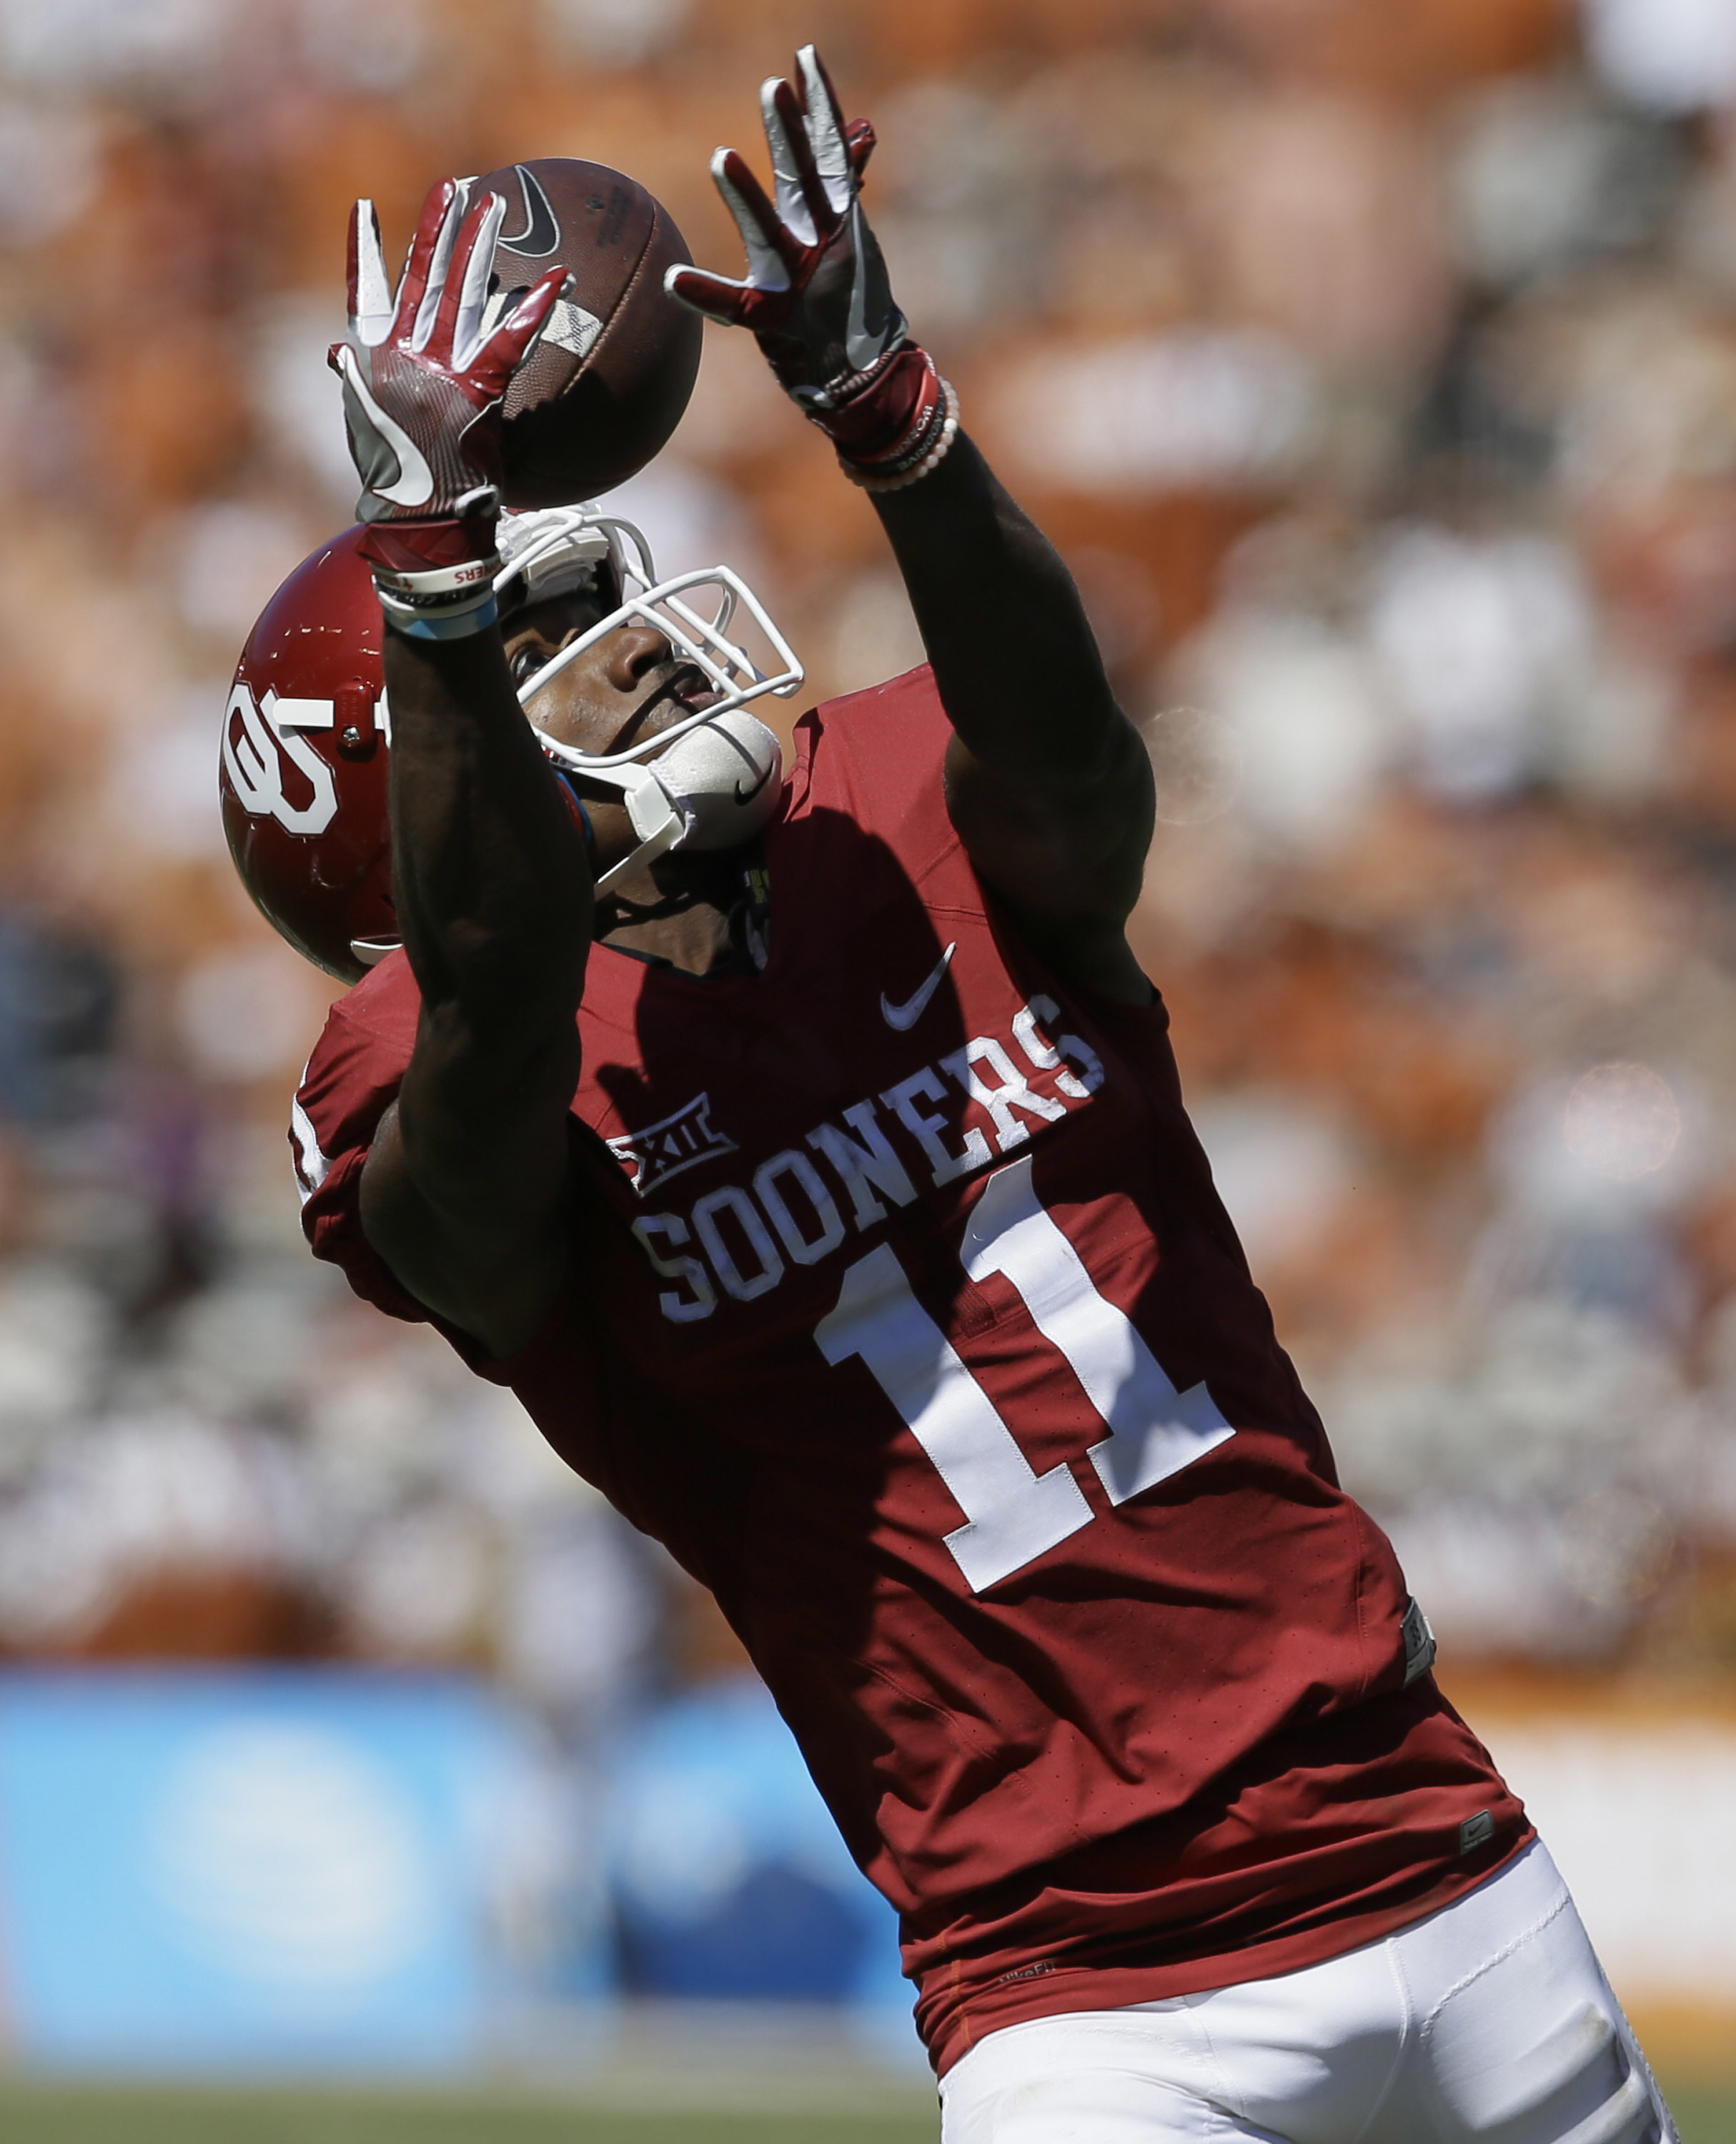 Oklahoma wide receiver Dede Westbrook (11) catches a touchdown pass during the second half of an NCAA college football game against Texas in Dallas Saturday, Oct. 8, 2016. Oklahoma won 45-40. (AP Photo/LM Otero)